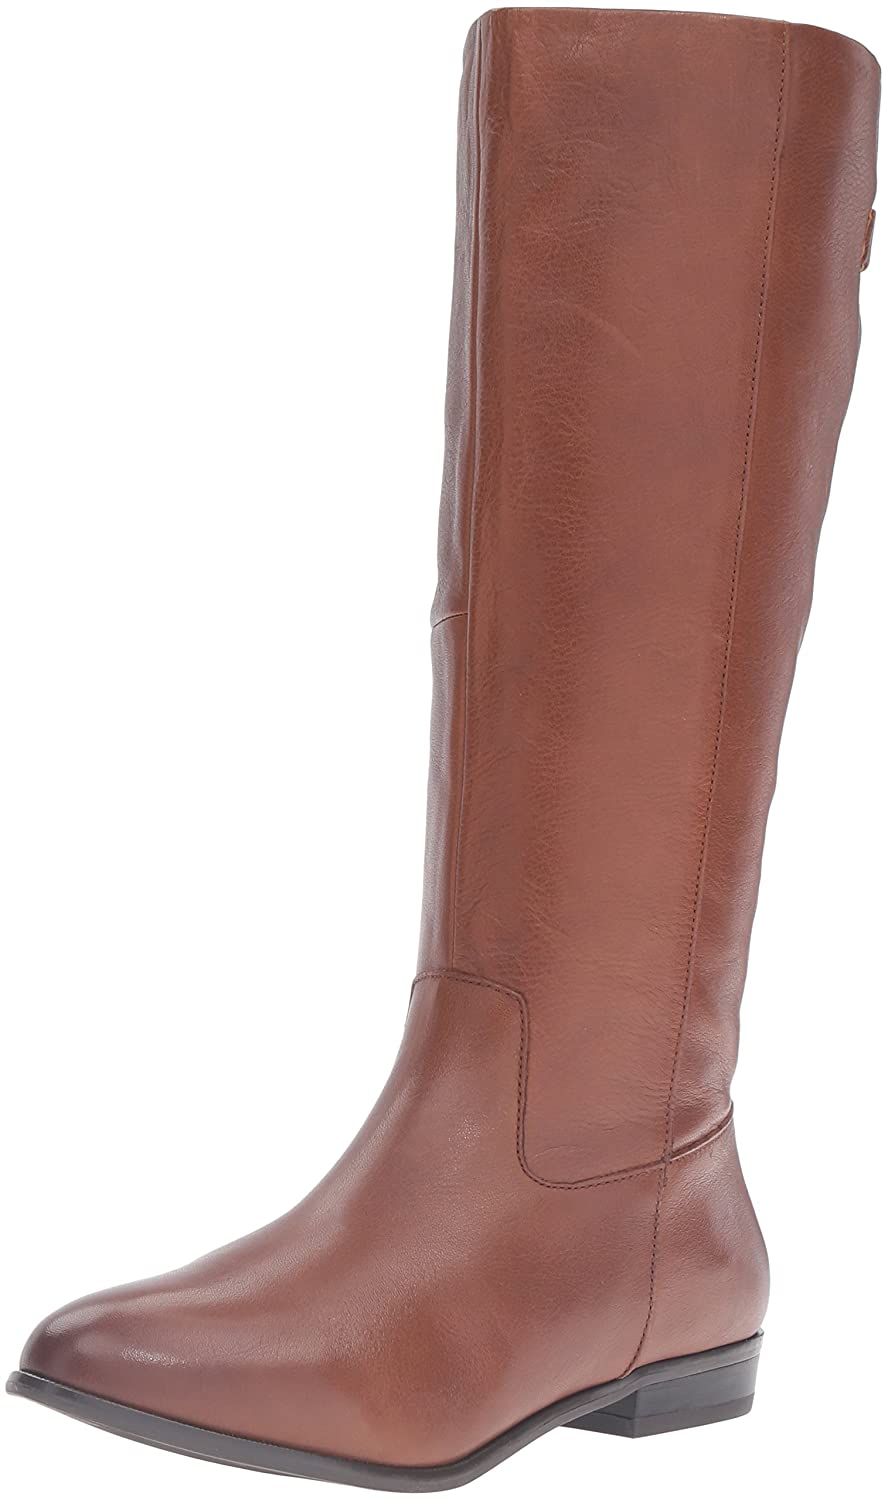 ALDO Women's Keesha Riding Boot B01JKJEIH2 7 B(M) US|Cognac